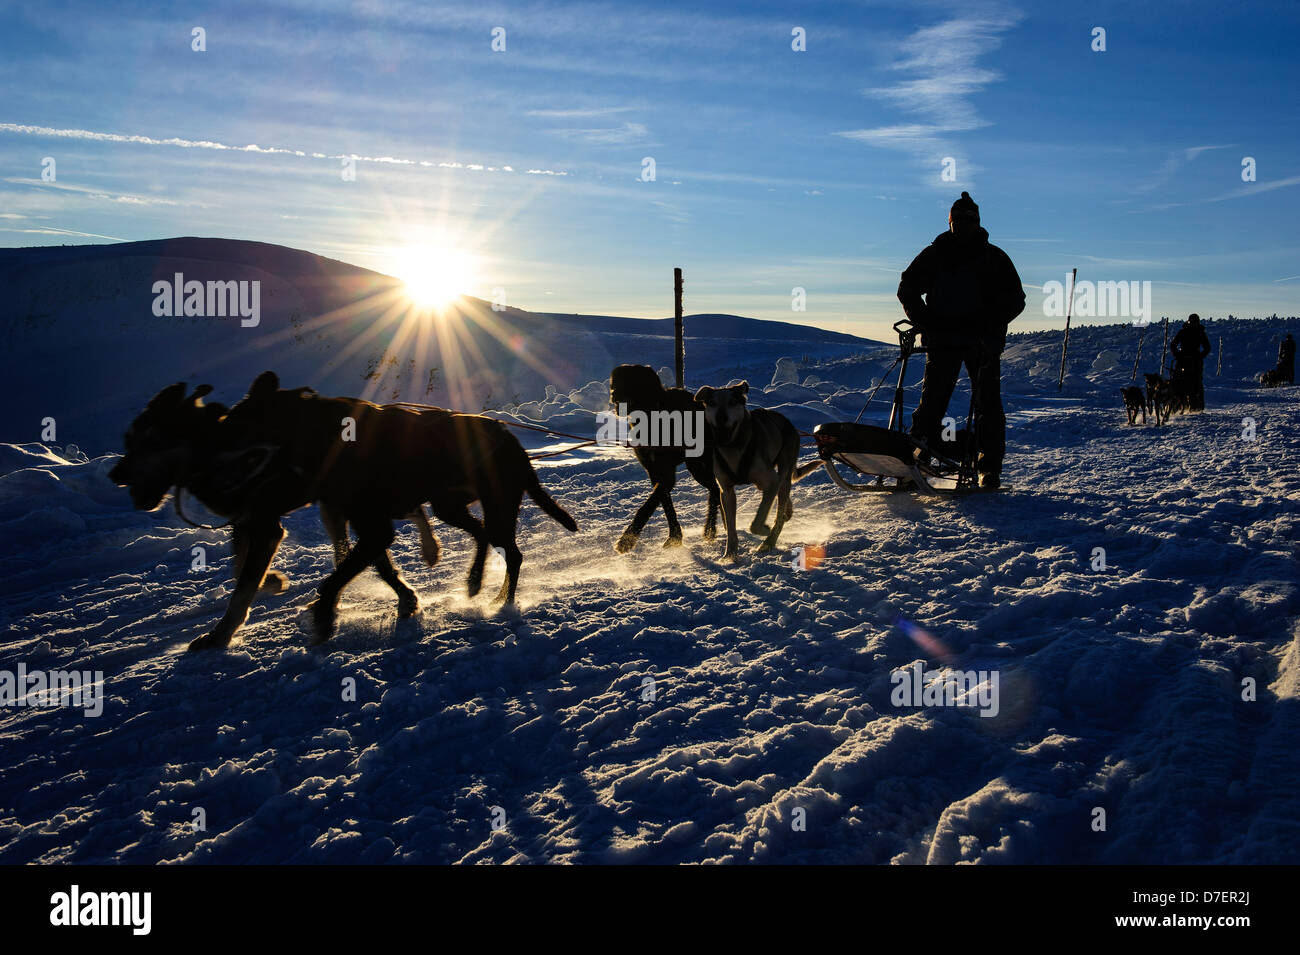 Silhouette of a dog sledge racing in the Karkonosze mountains, Poland. - Stock Image